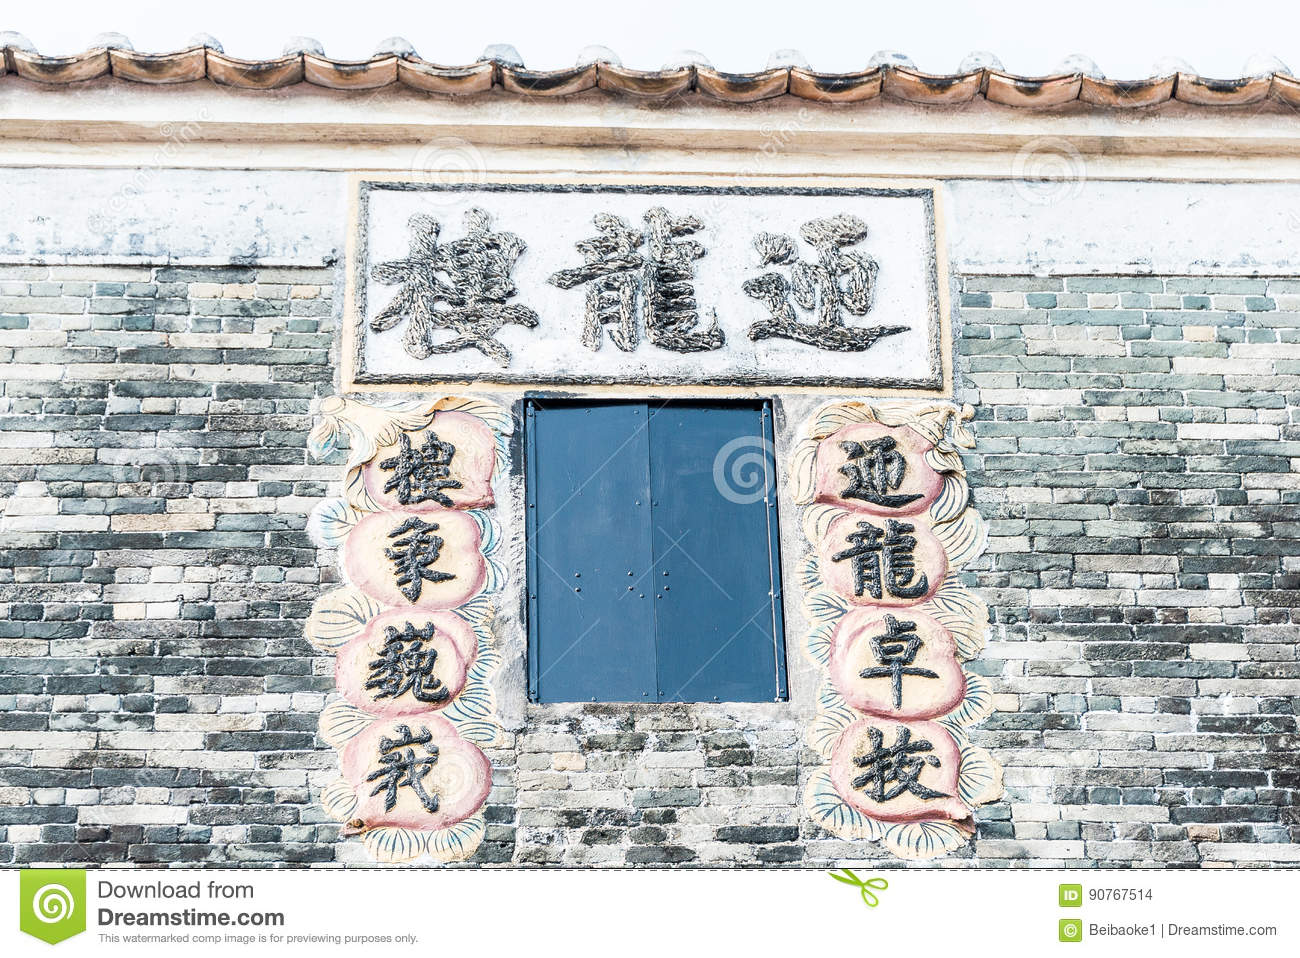 GUNAGDONG, CHINA - Dec 16 2015: Relief of Yinglong Lou at Sanmenli Village (UNESCO World Heritage site). a famous historic site i